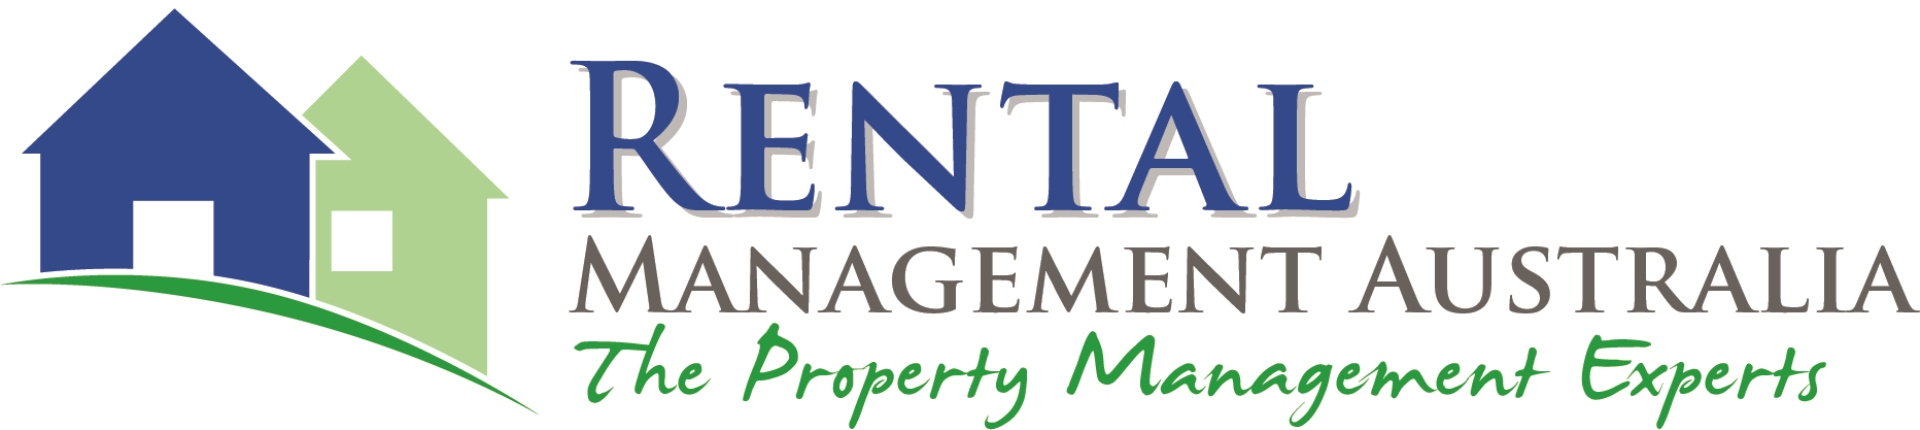 Rental Management Australia, Bunbury, 6230